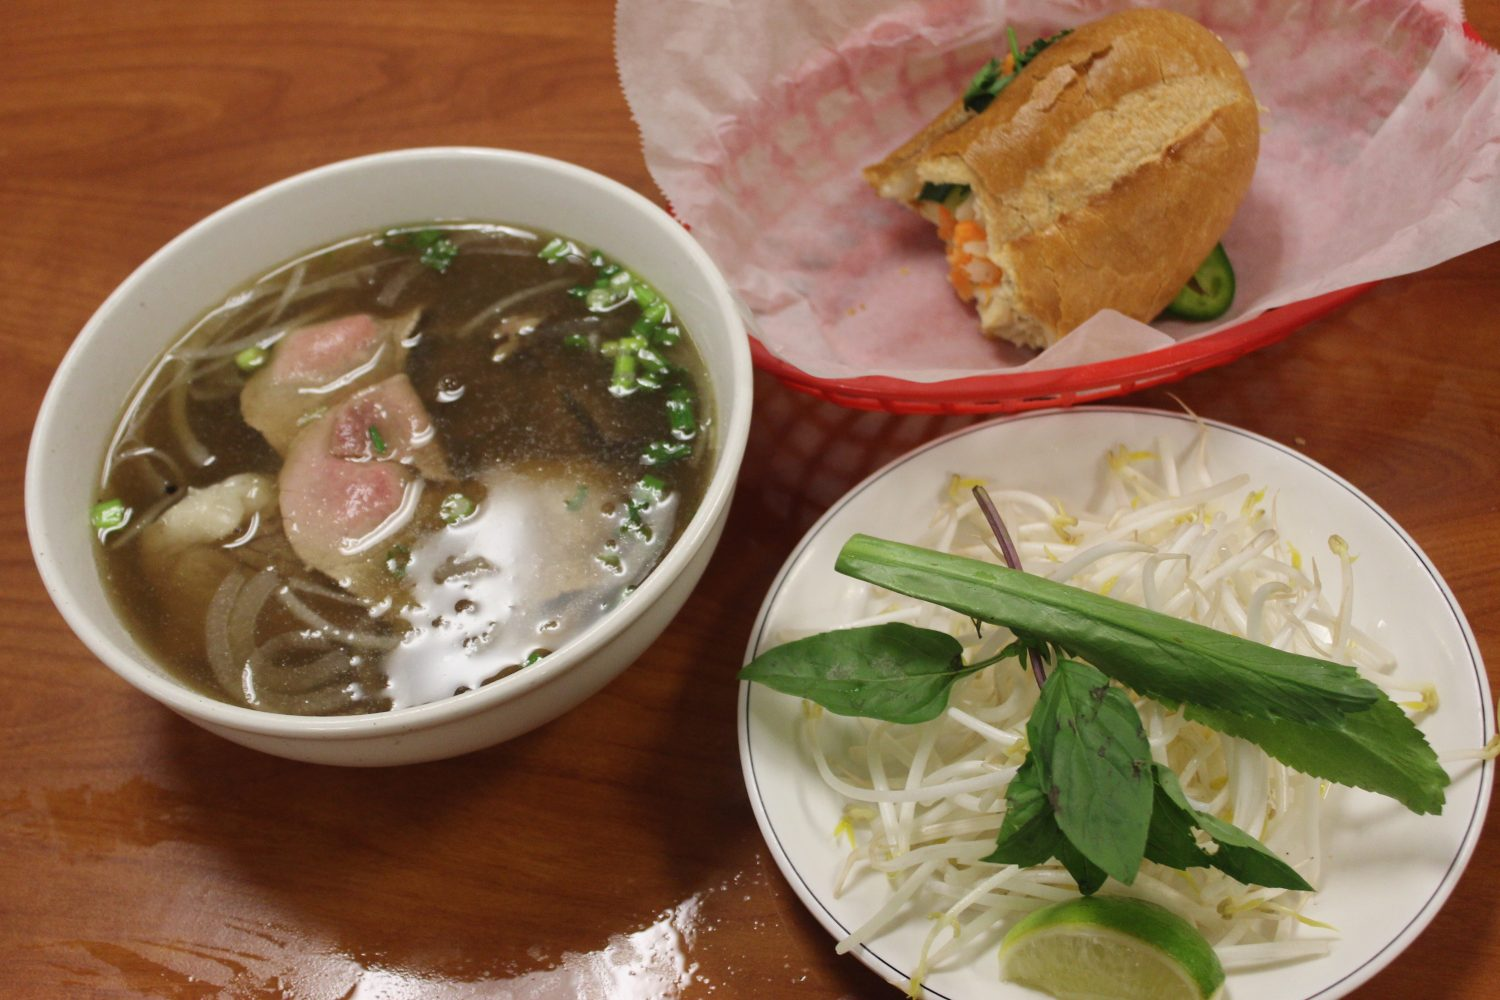 Quest for the Best: Lees Bakery pho the win